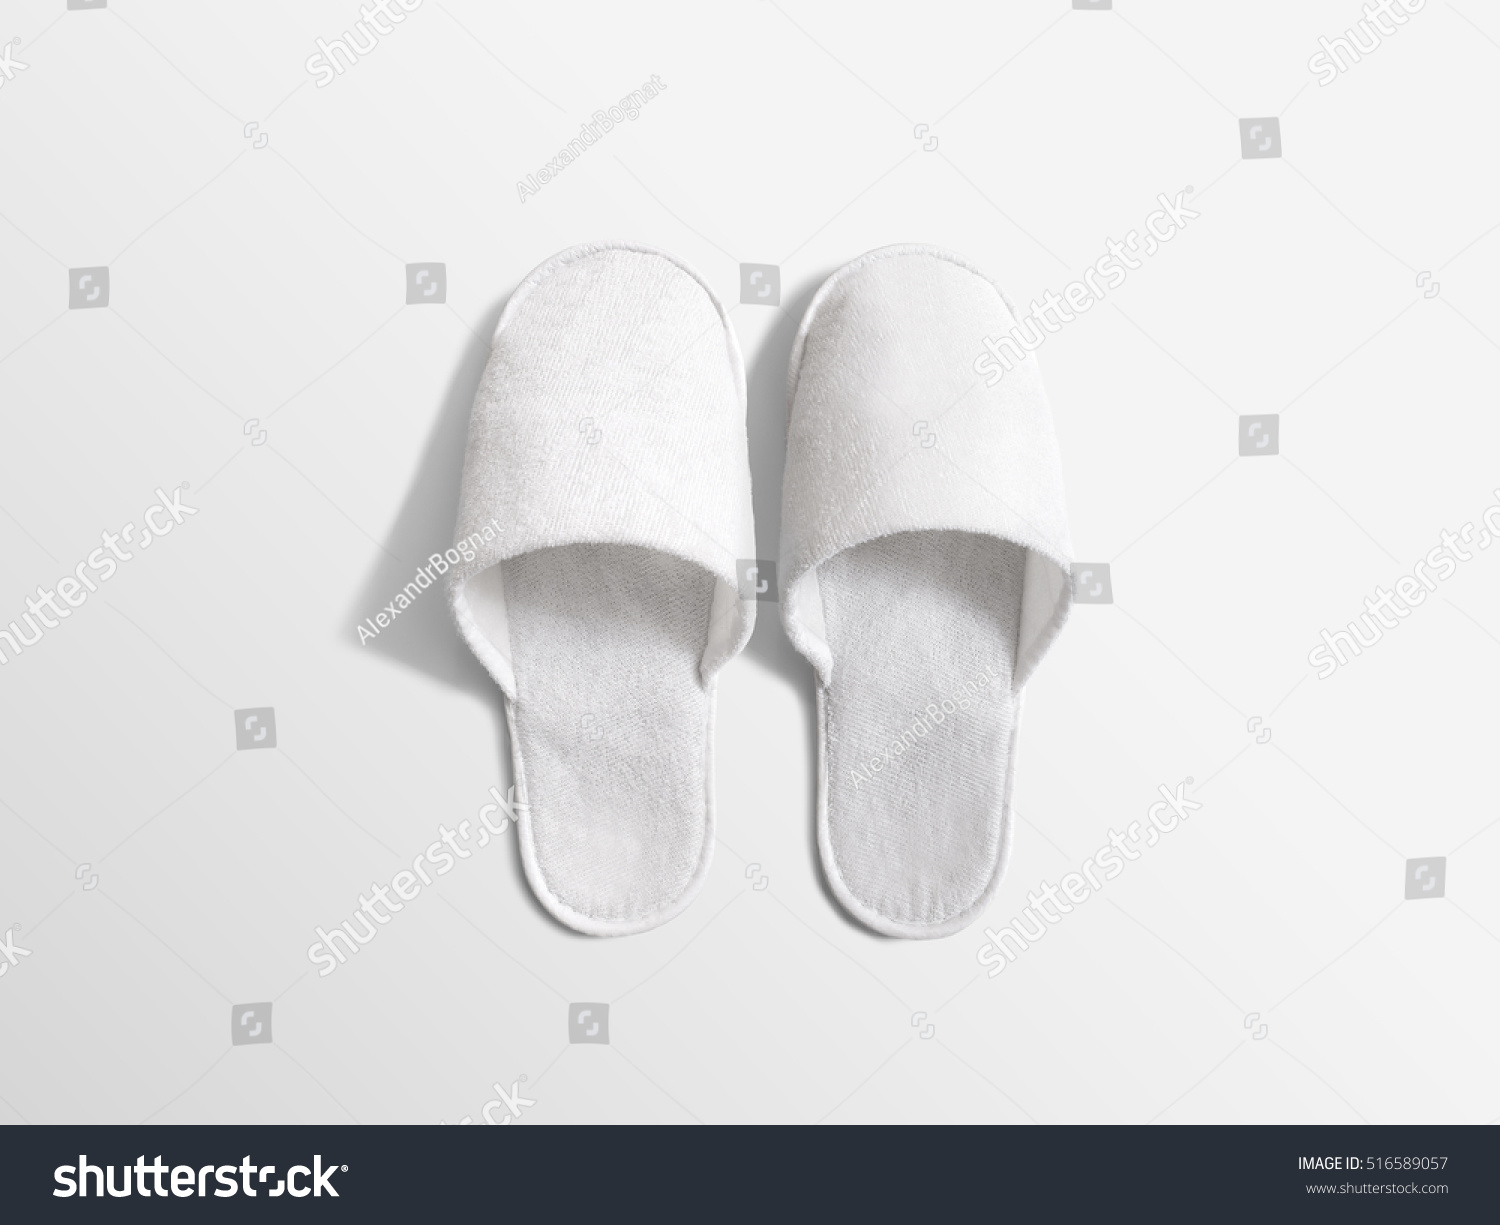 Mock ups of one bedroom two bedroom and three bedroom apartments - Pair Of Blank Soft White Home Slippers Design Mockup House Plain Flops Mock Up